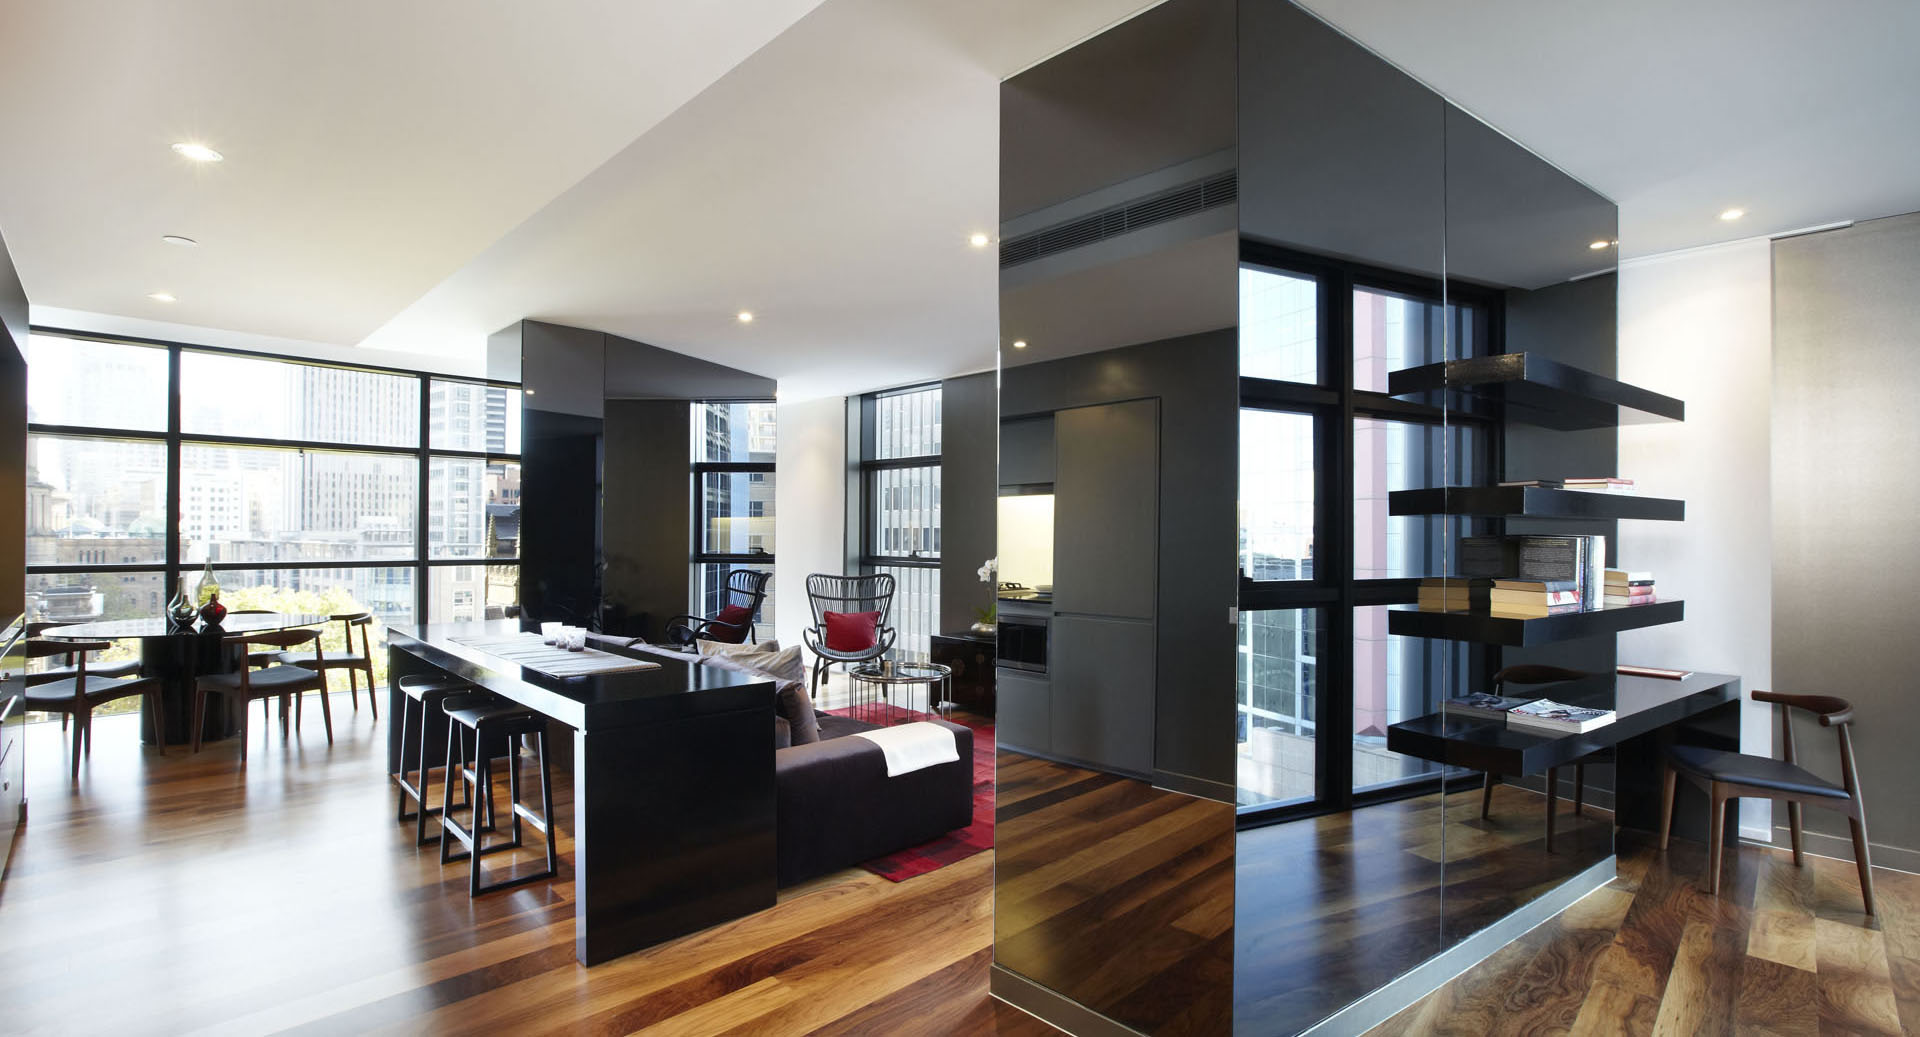 Studio Apartment Sydney contemporary apartment designs in sydney | idesignarch | interior